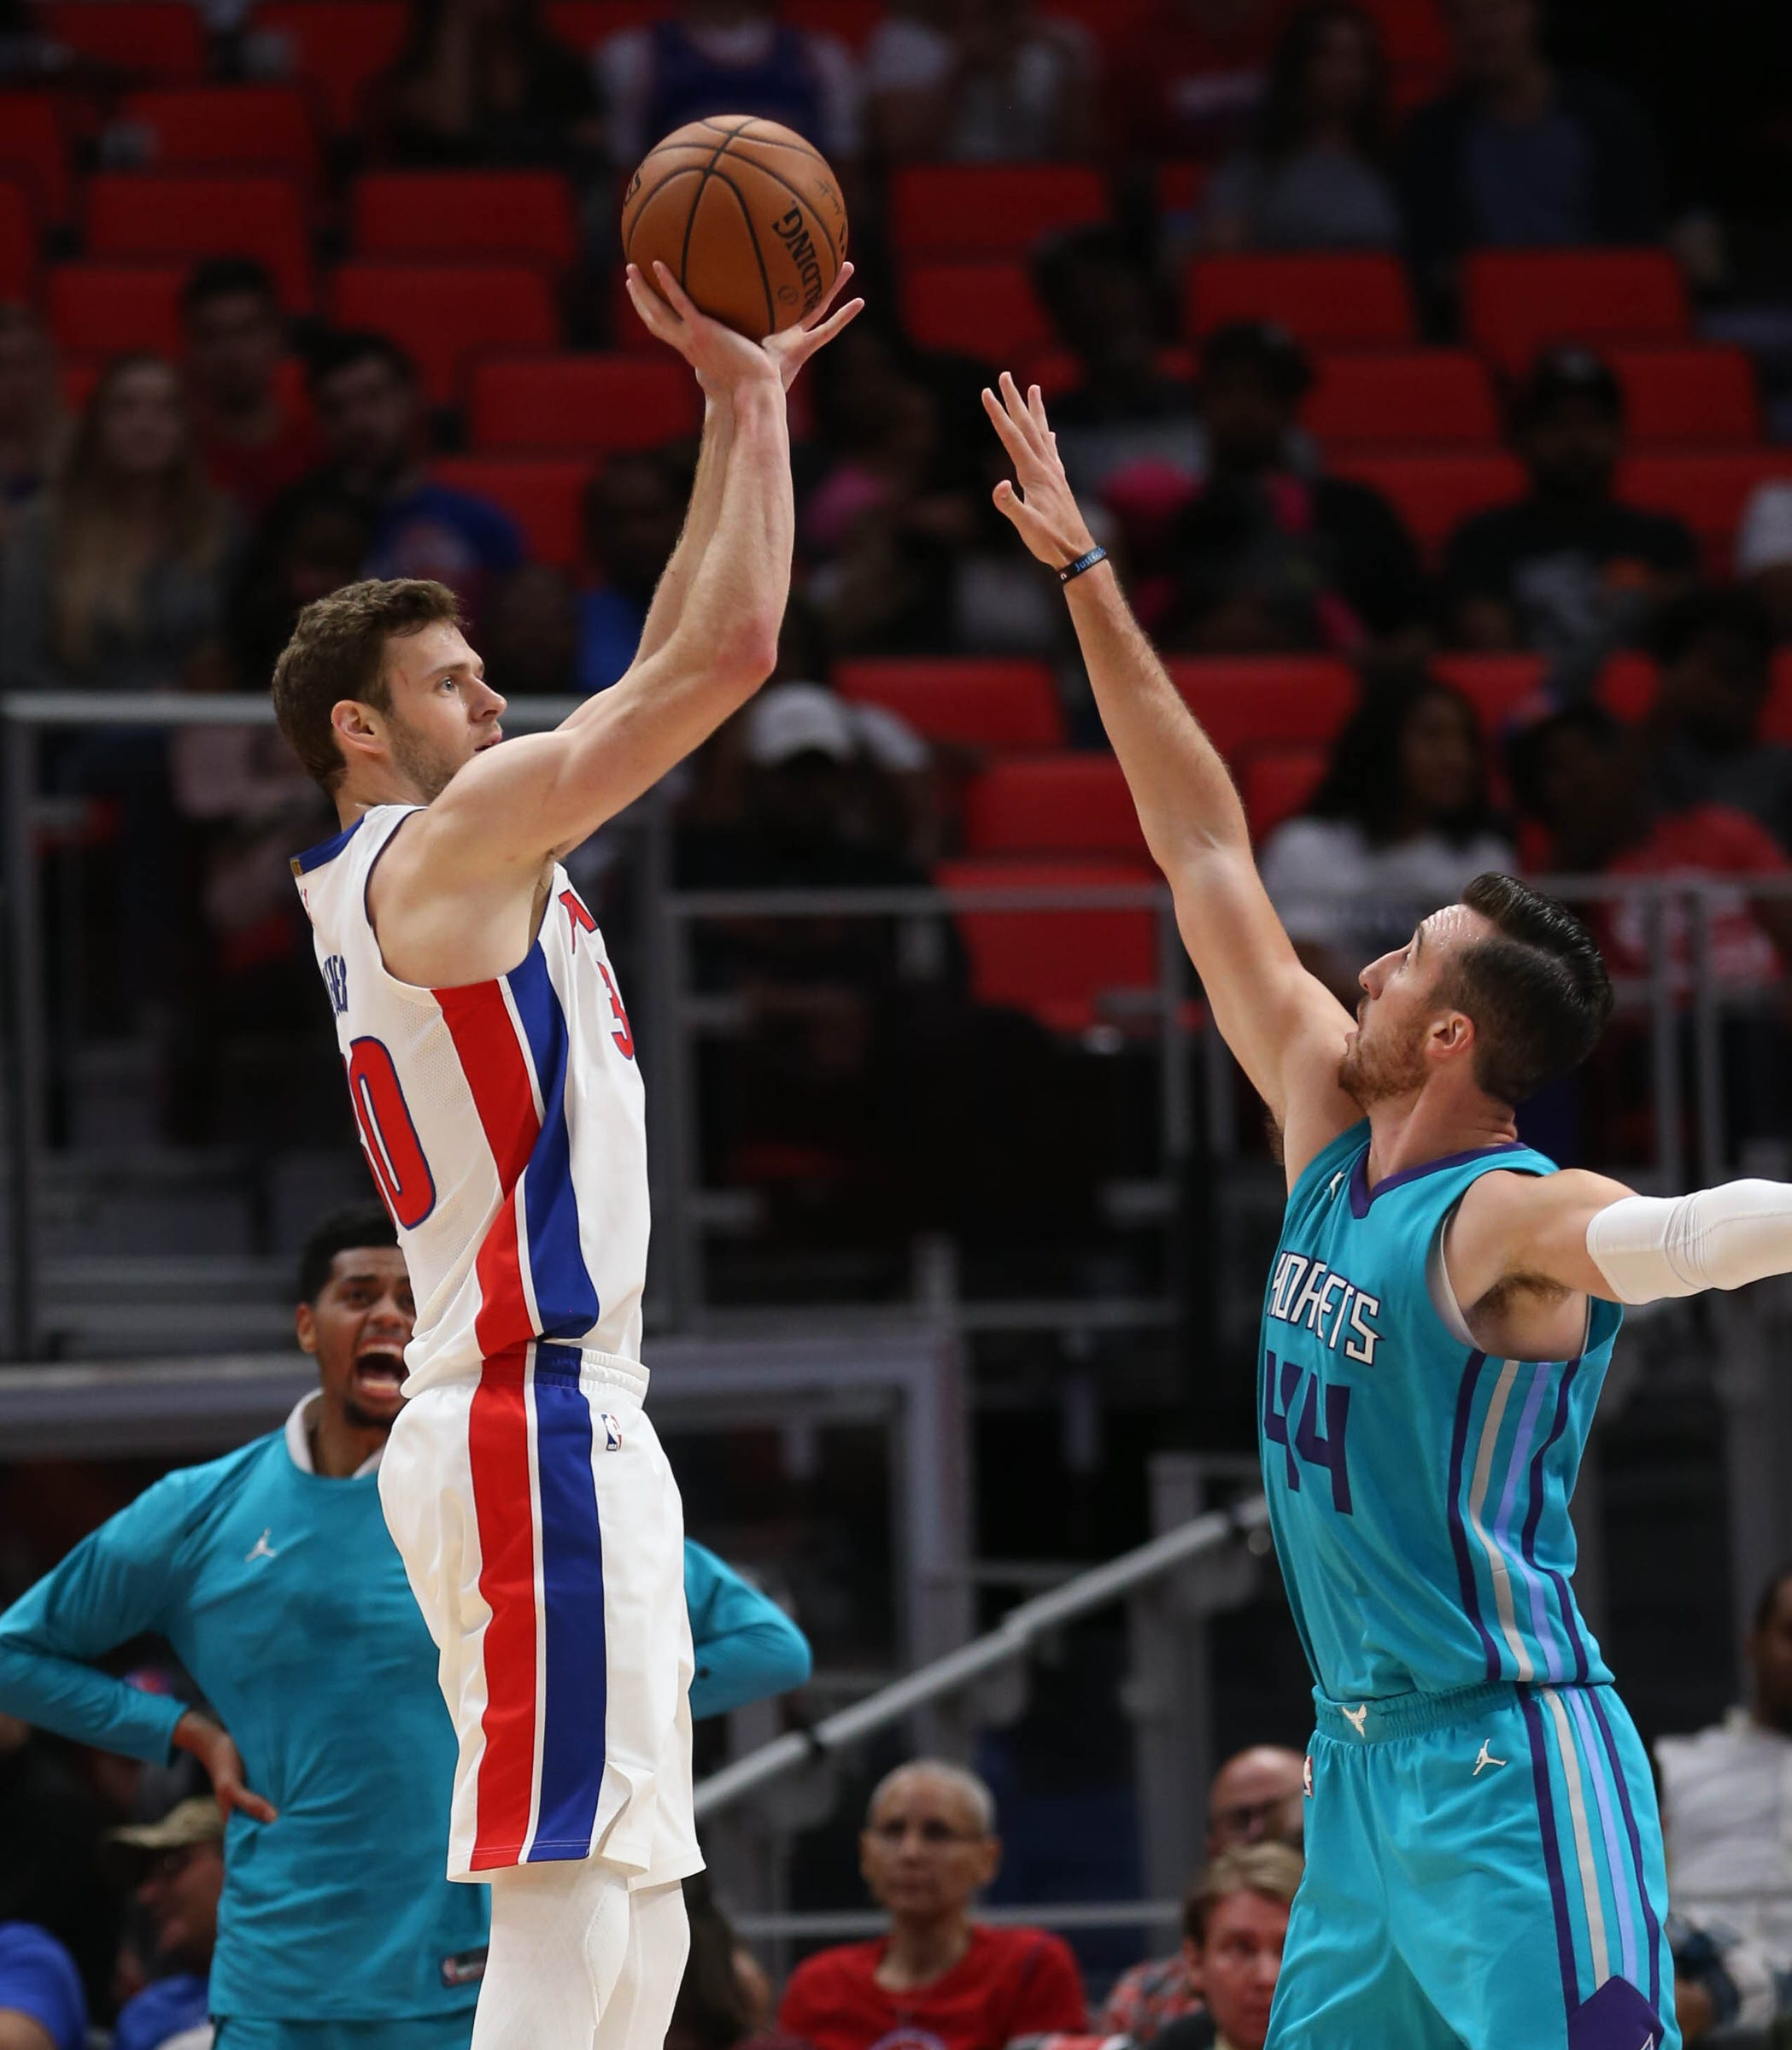 7adec78ce72 http   www.freep.com picture-gallery sports nba pistons 2018 07 15 ...